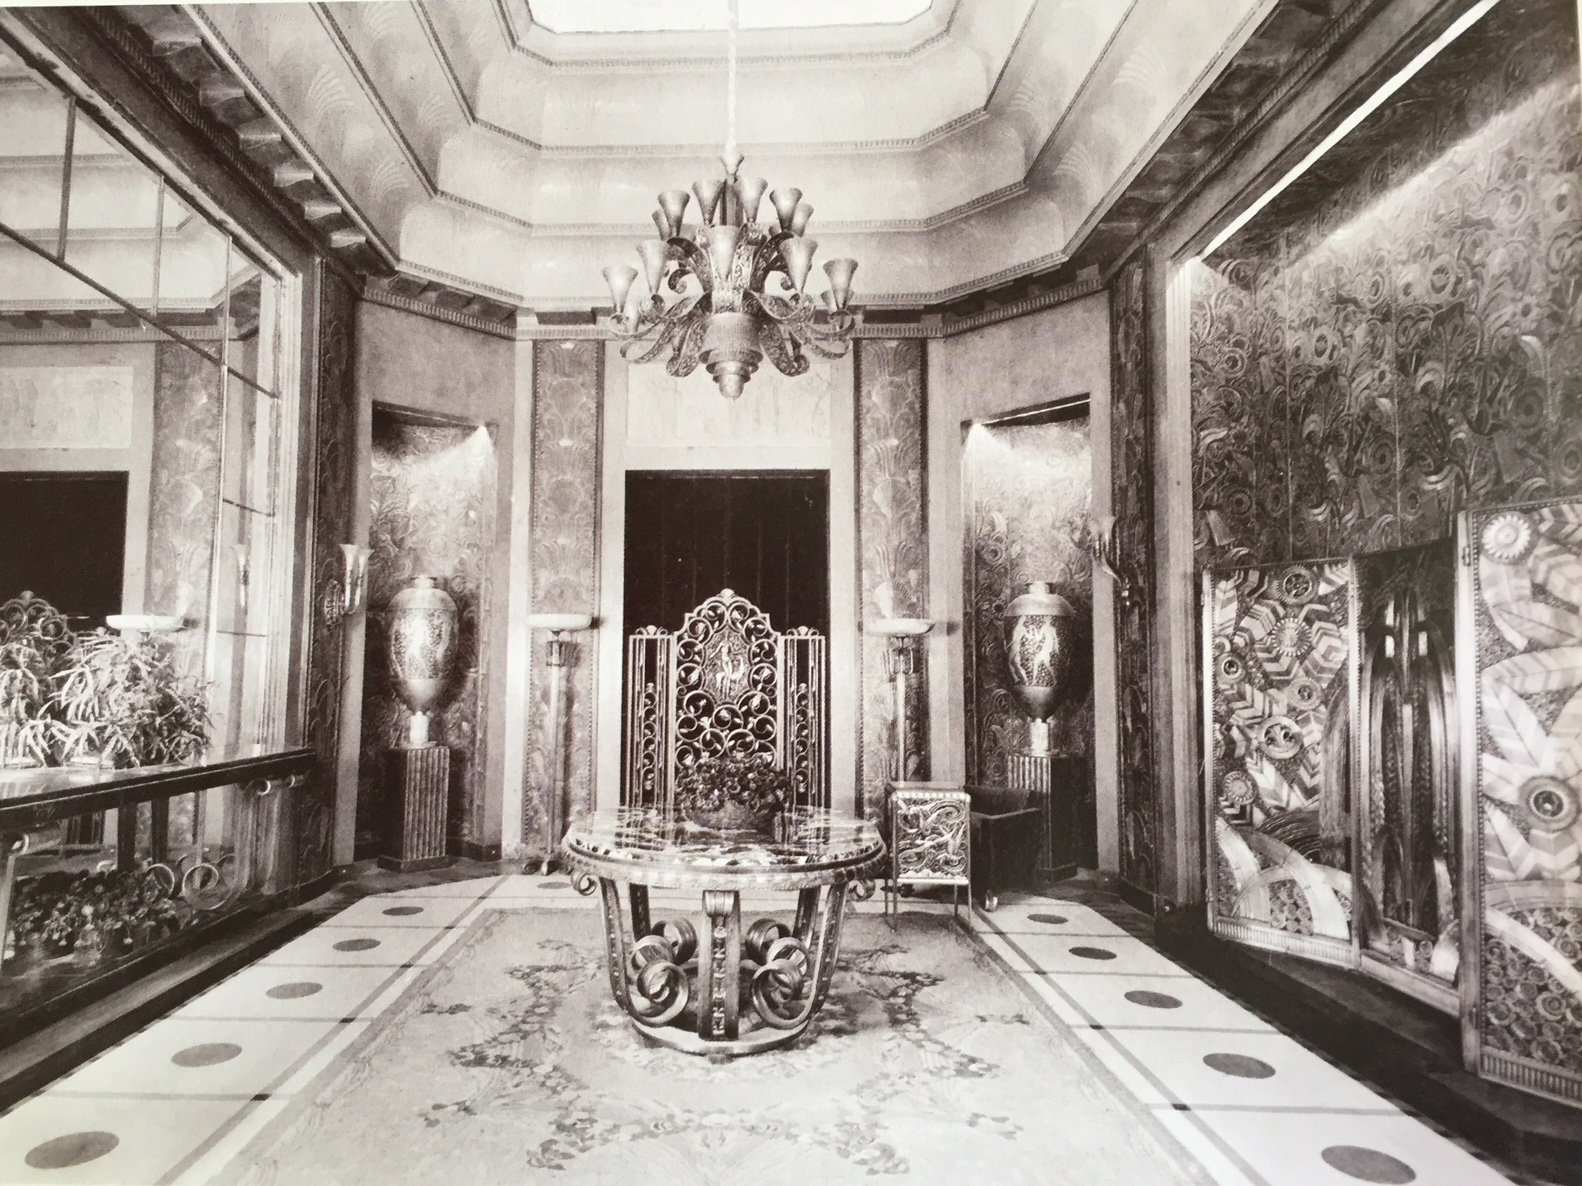 Edgar Brandt, Salon for a French Embassy, created for the International Exposition of Modern Decorative and Industrial Arts, Paris 1925